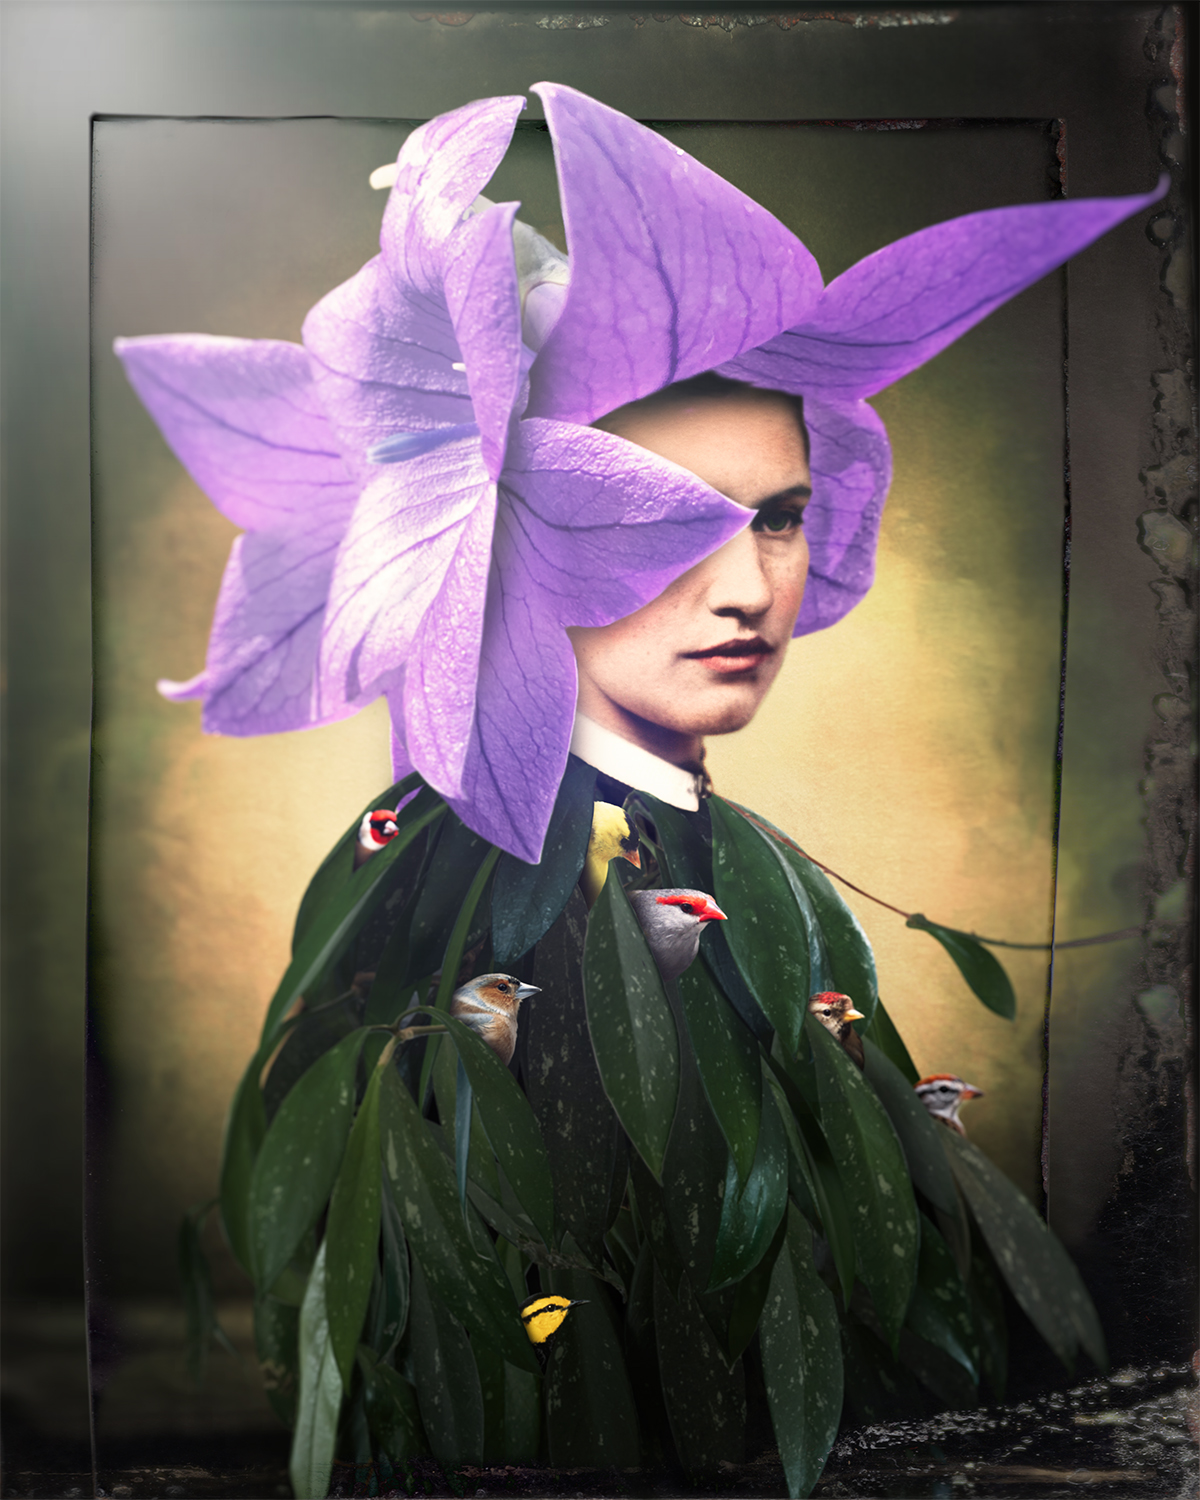 The Violet_Talking_Flower_by_Laura_Cole_Web.jpg